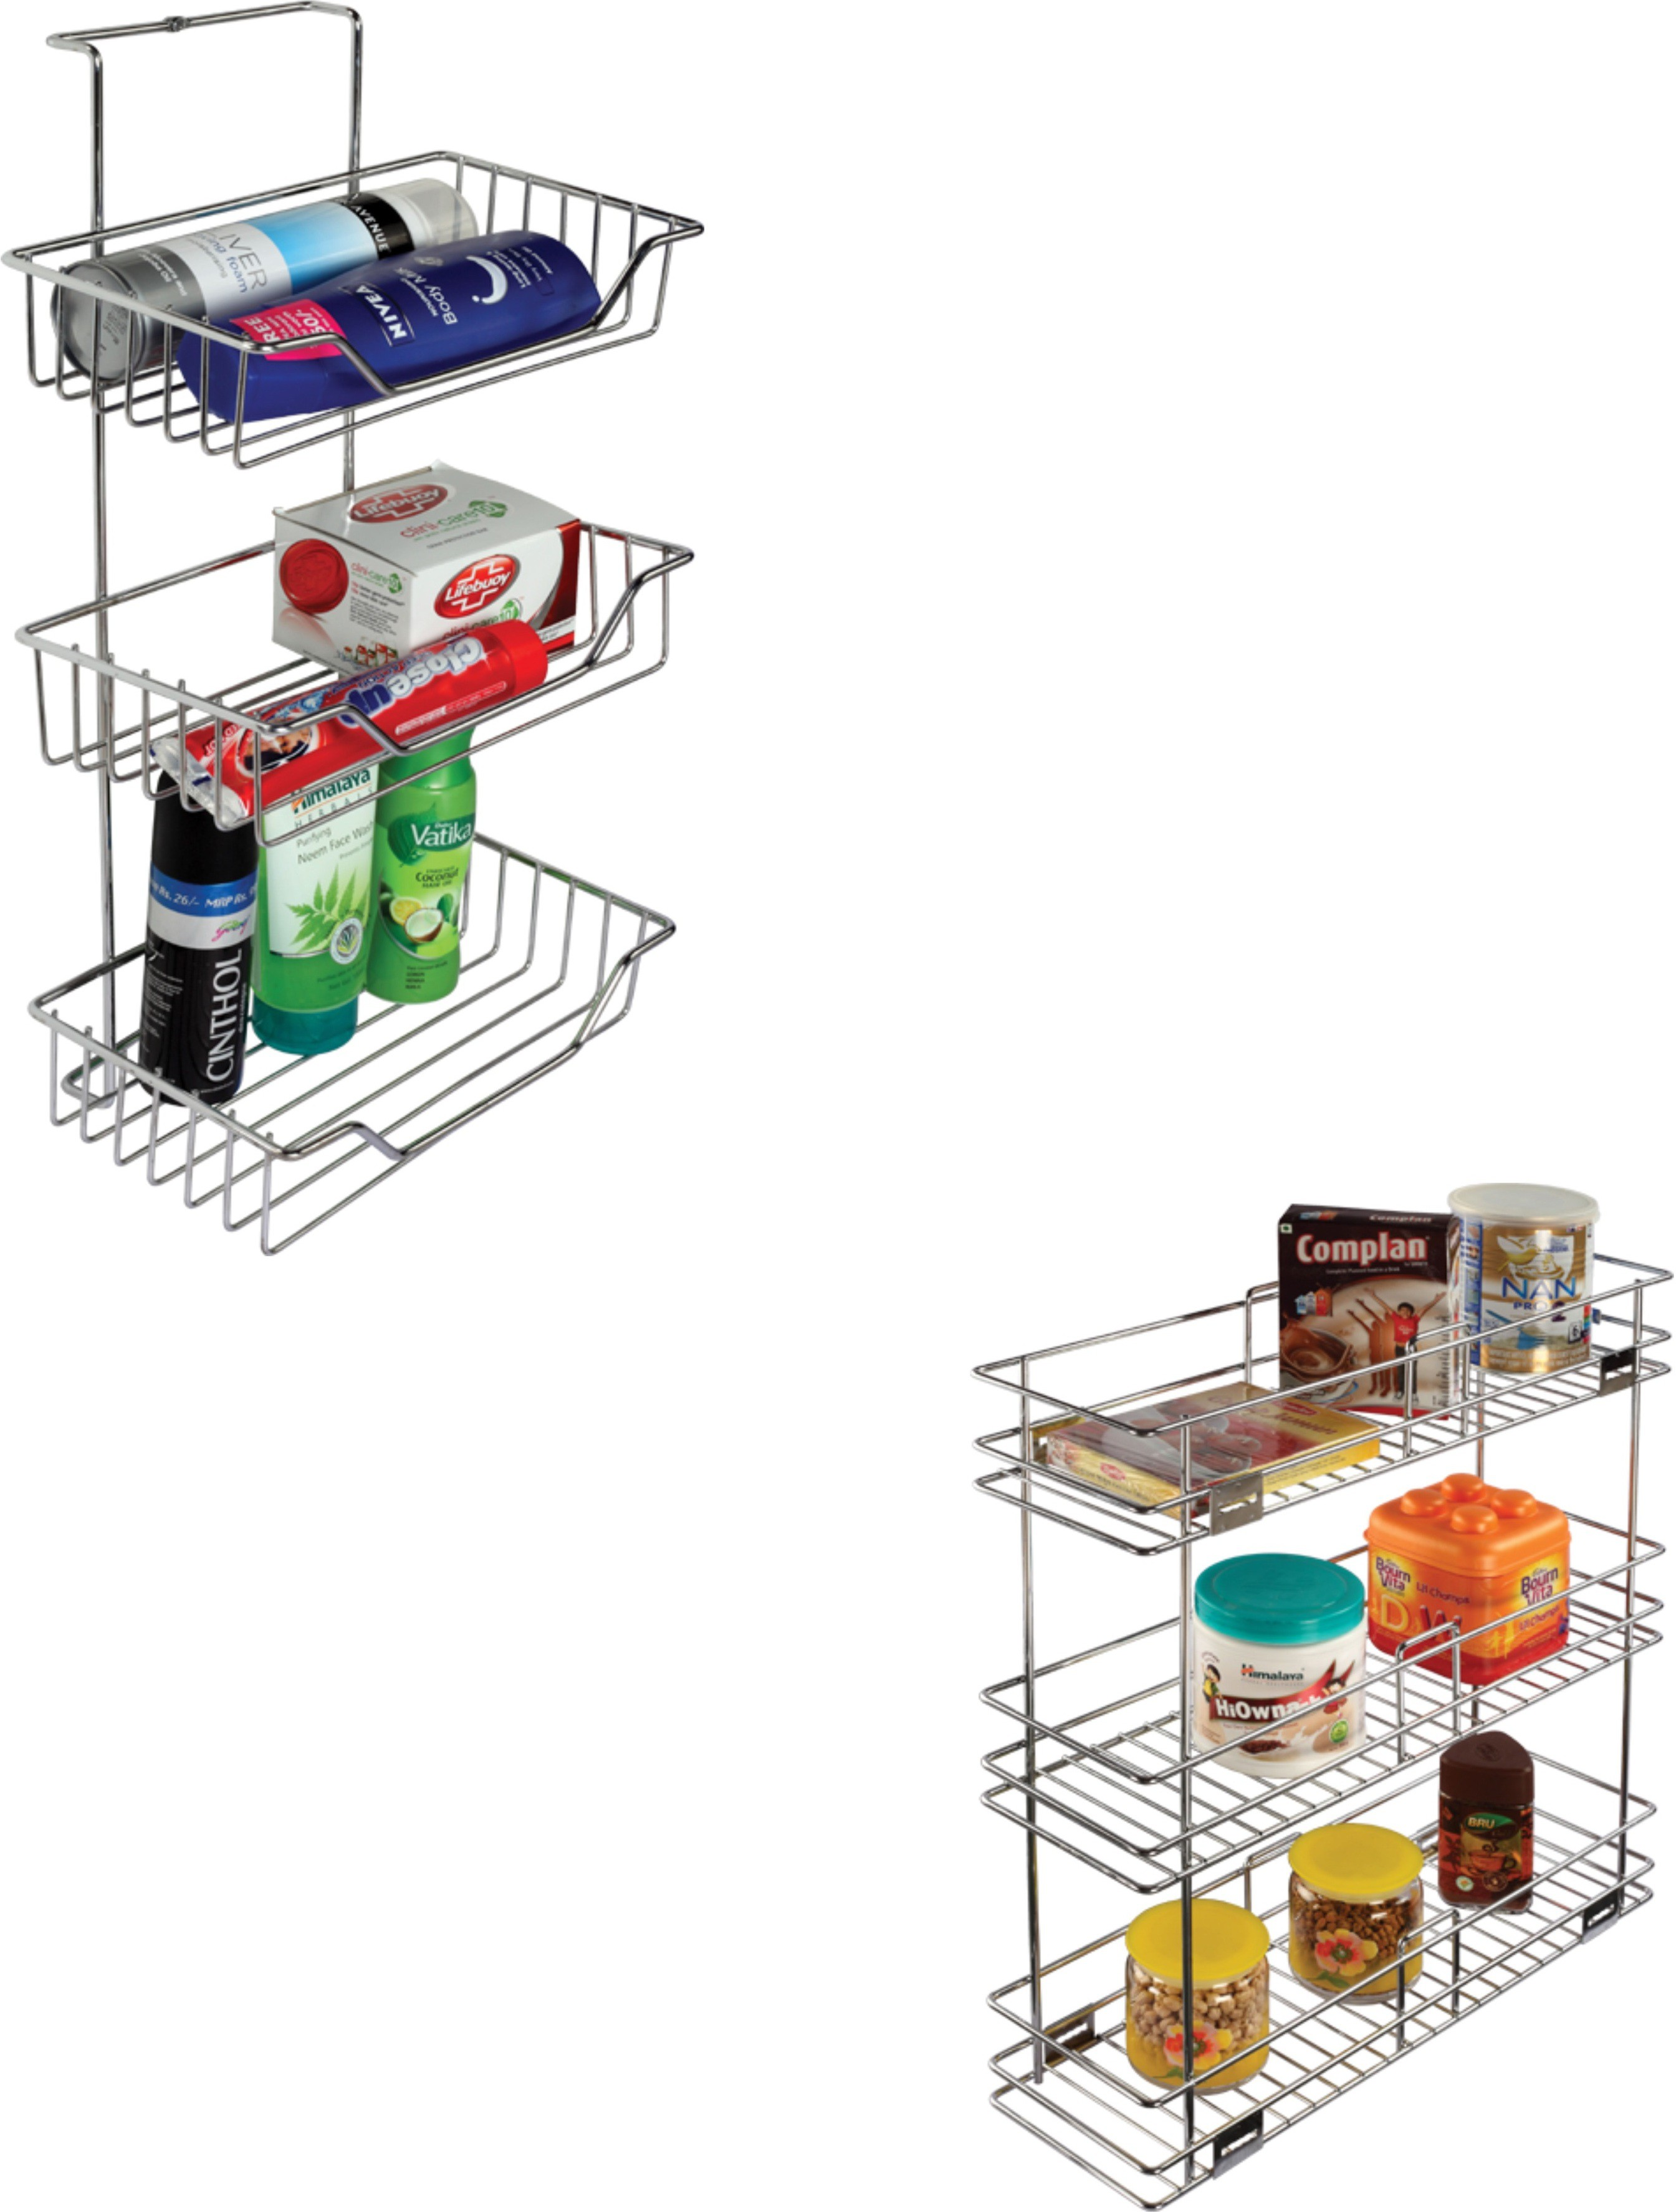 Leaves Bathroom Rack And Kitchen Rack Combo Stainless Steel Wall Shelf Stainless Steel Wall Shelf